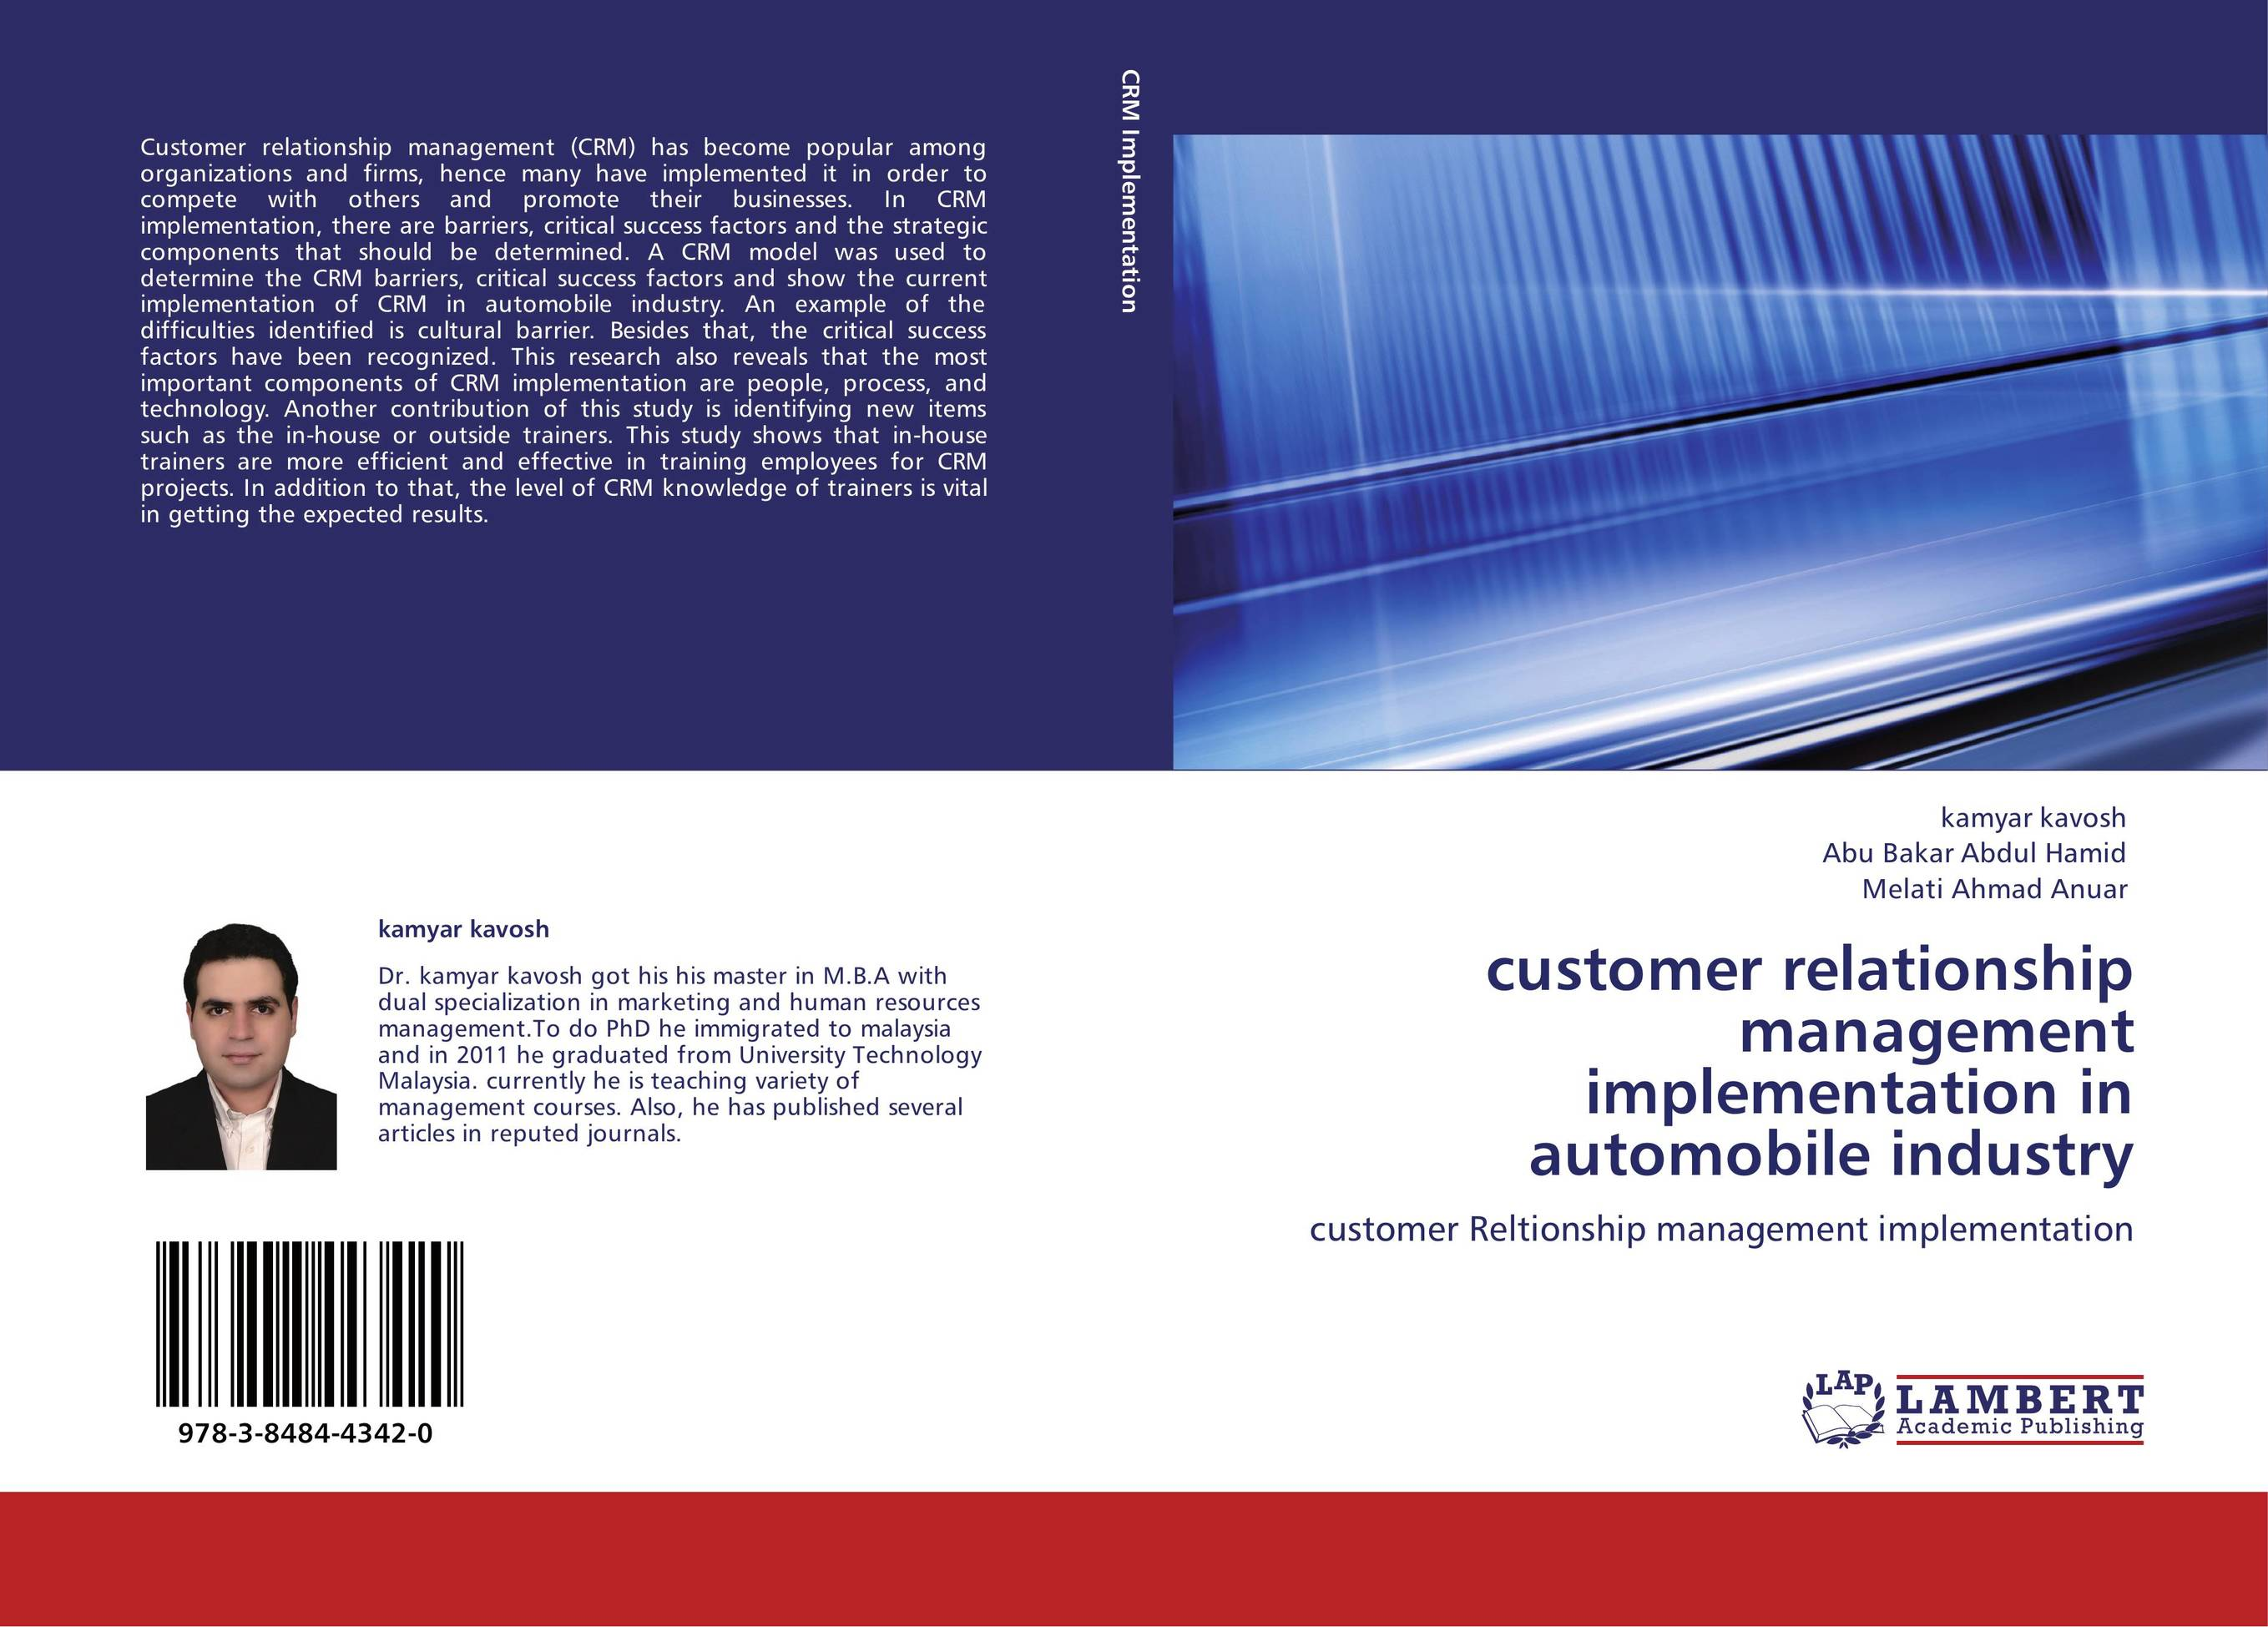 customer relationship management in automobile industry Information technology is a costly enabler of customer relationship management (crm) but crm programs coupled with smart technology and strategy may soon mean the end of the road for mass marketing in the auto industry.